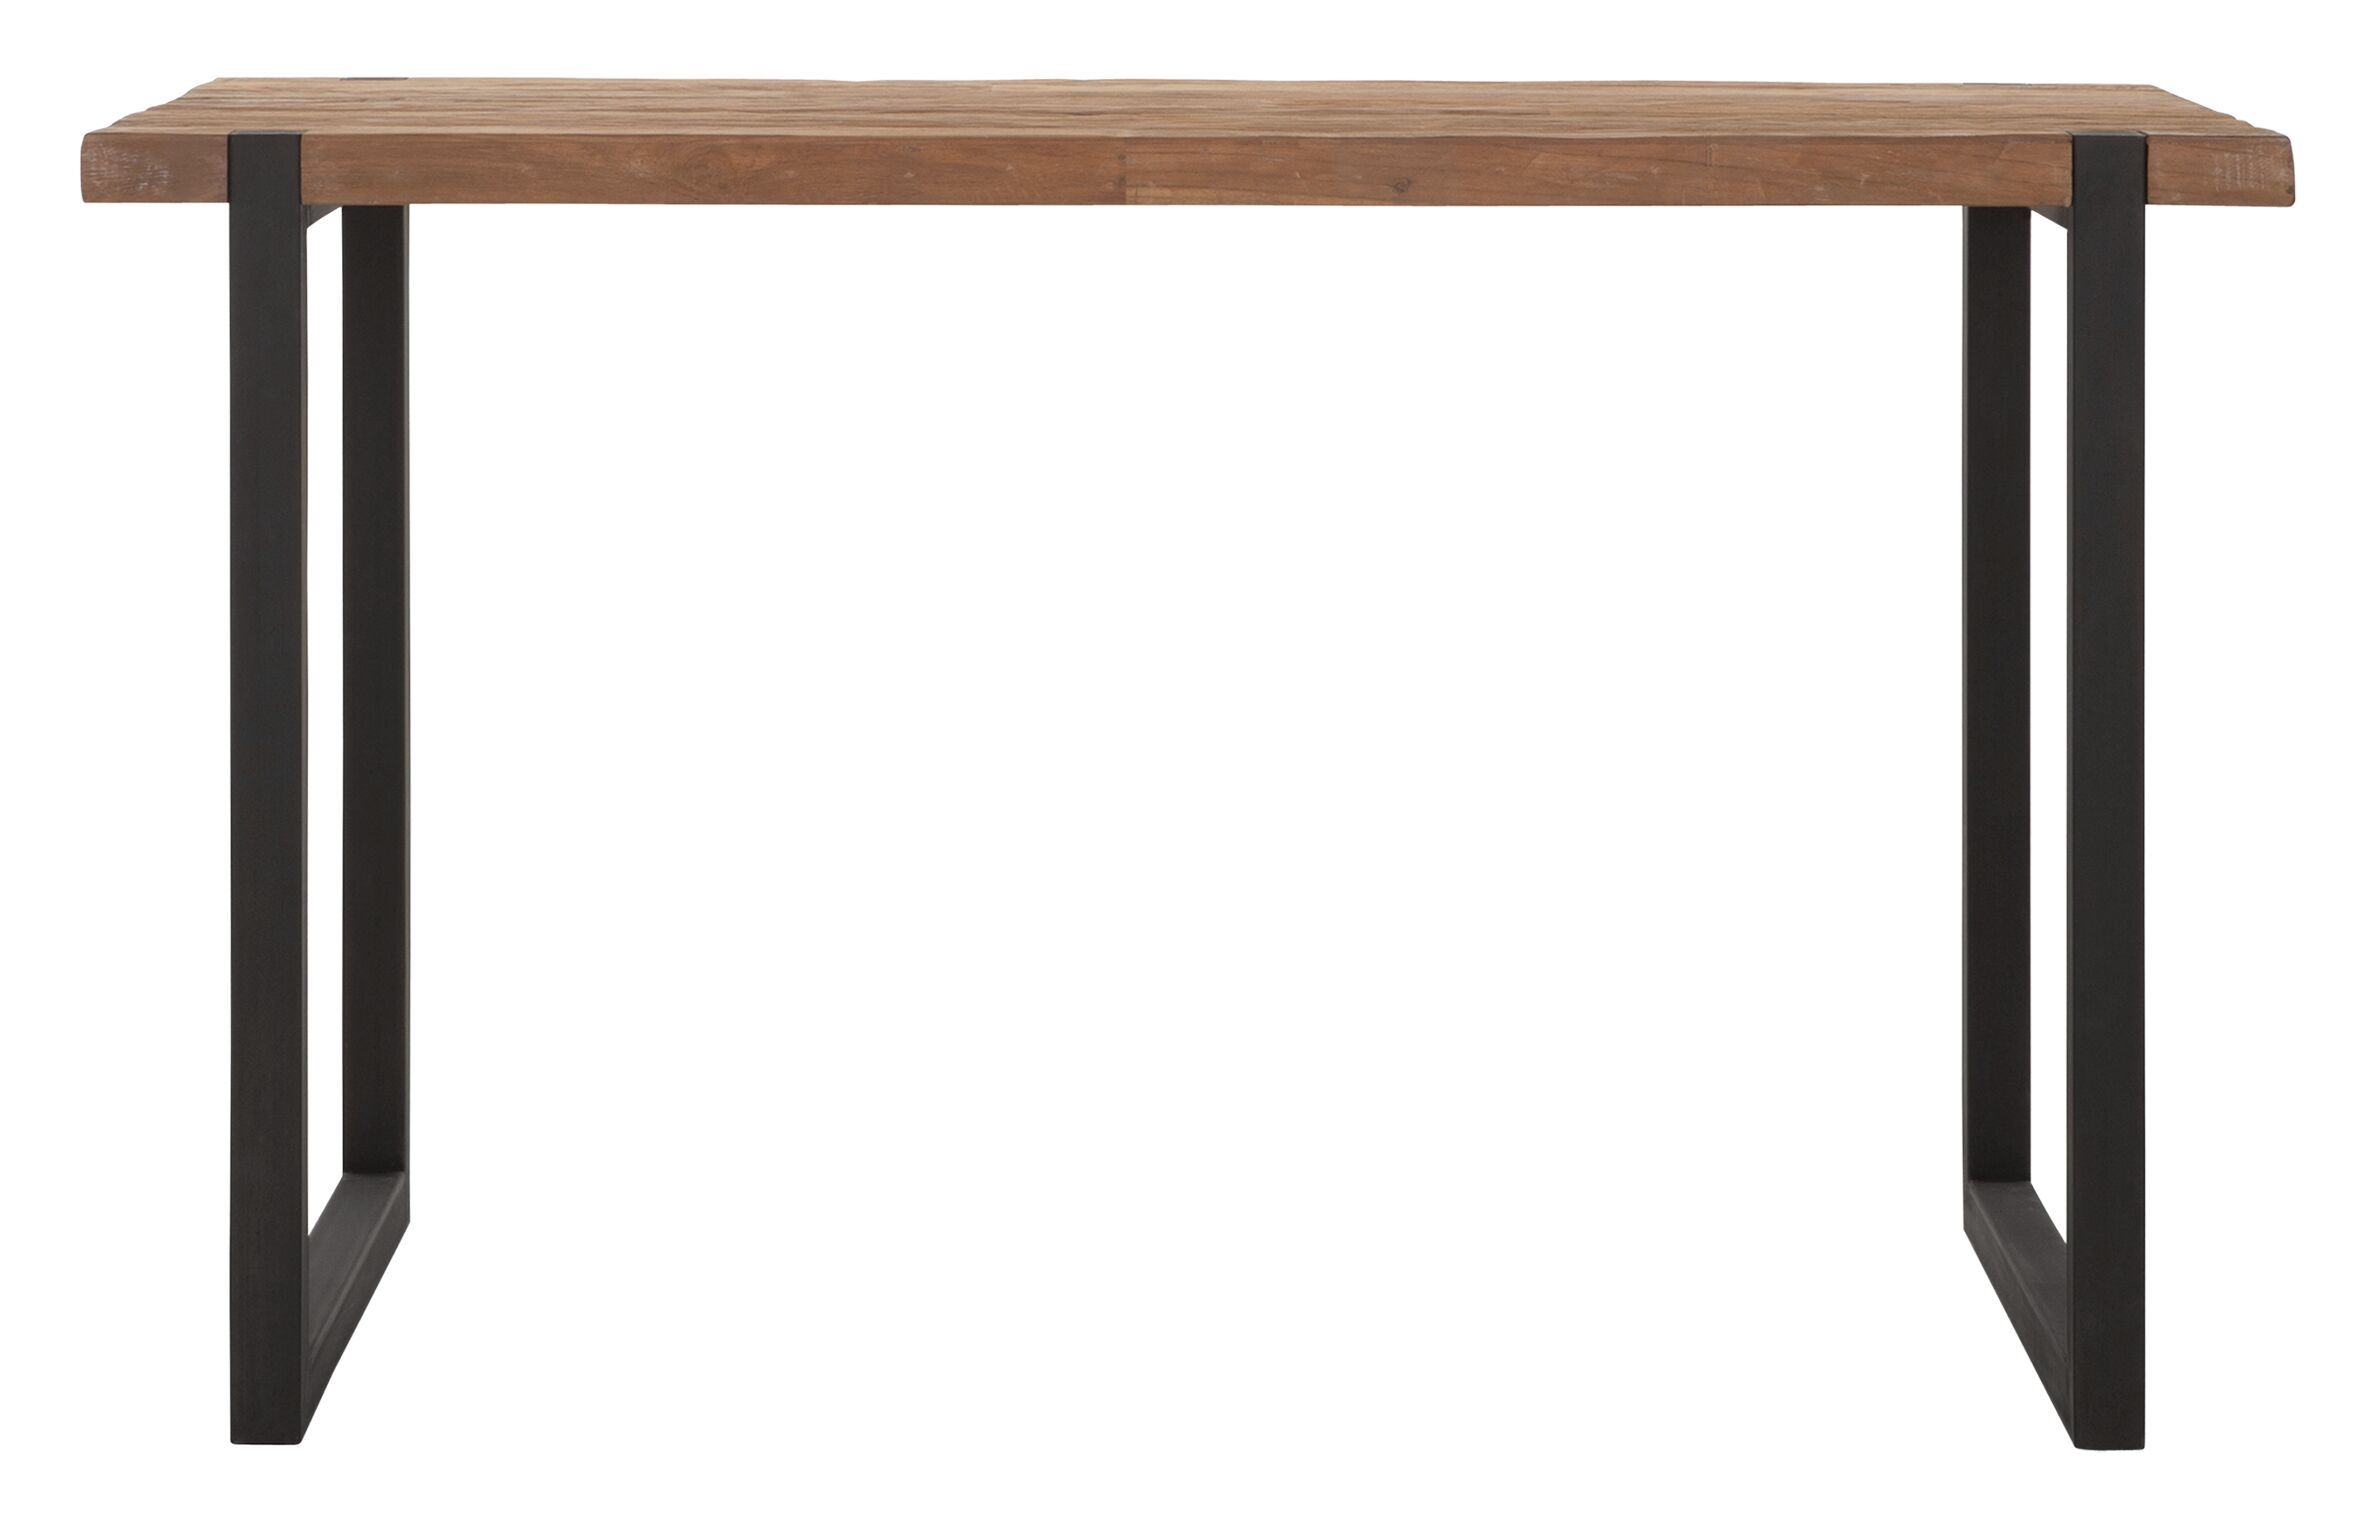 DTP Home Timeless Counter Table Beam